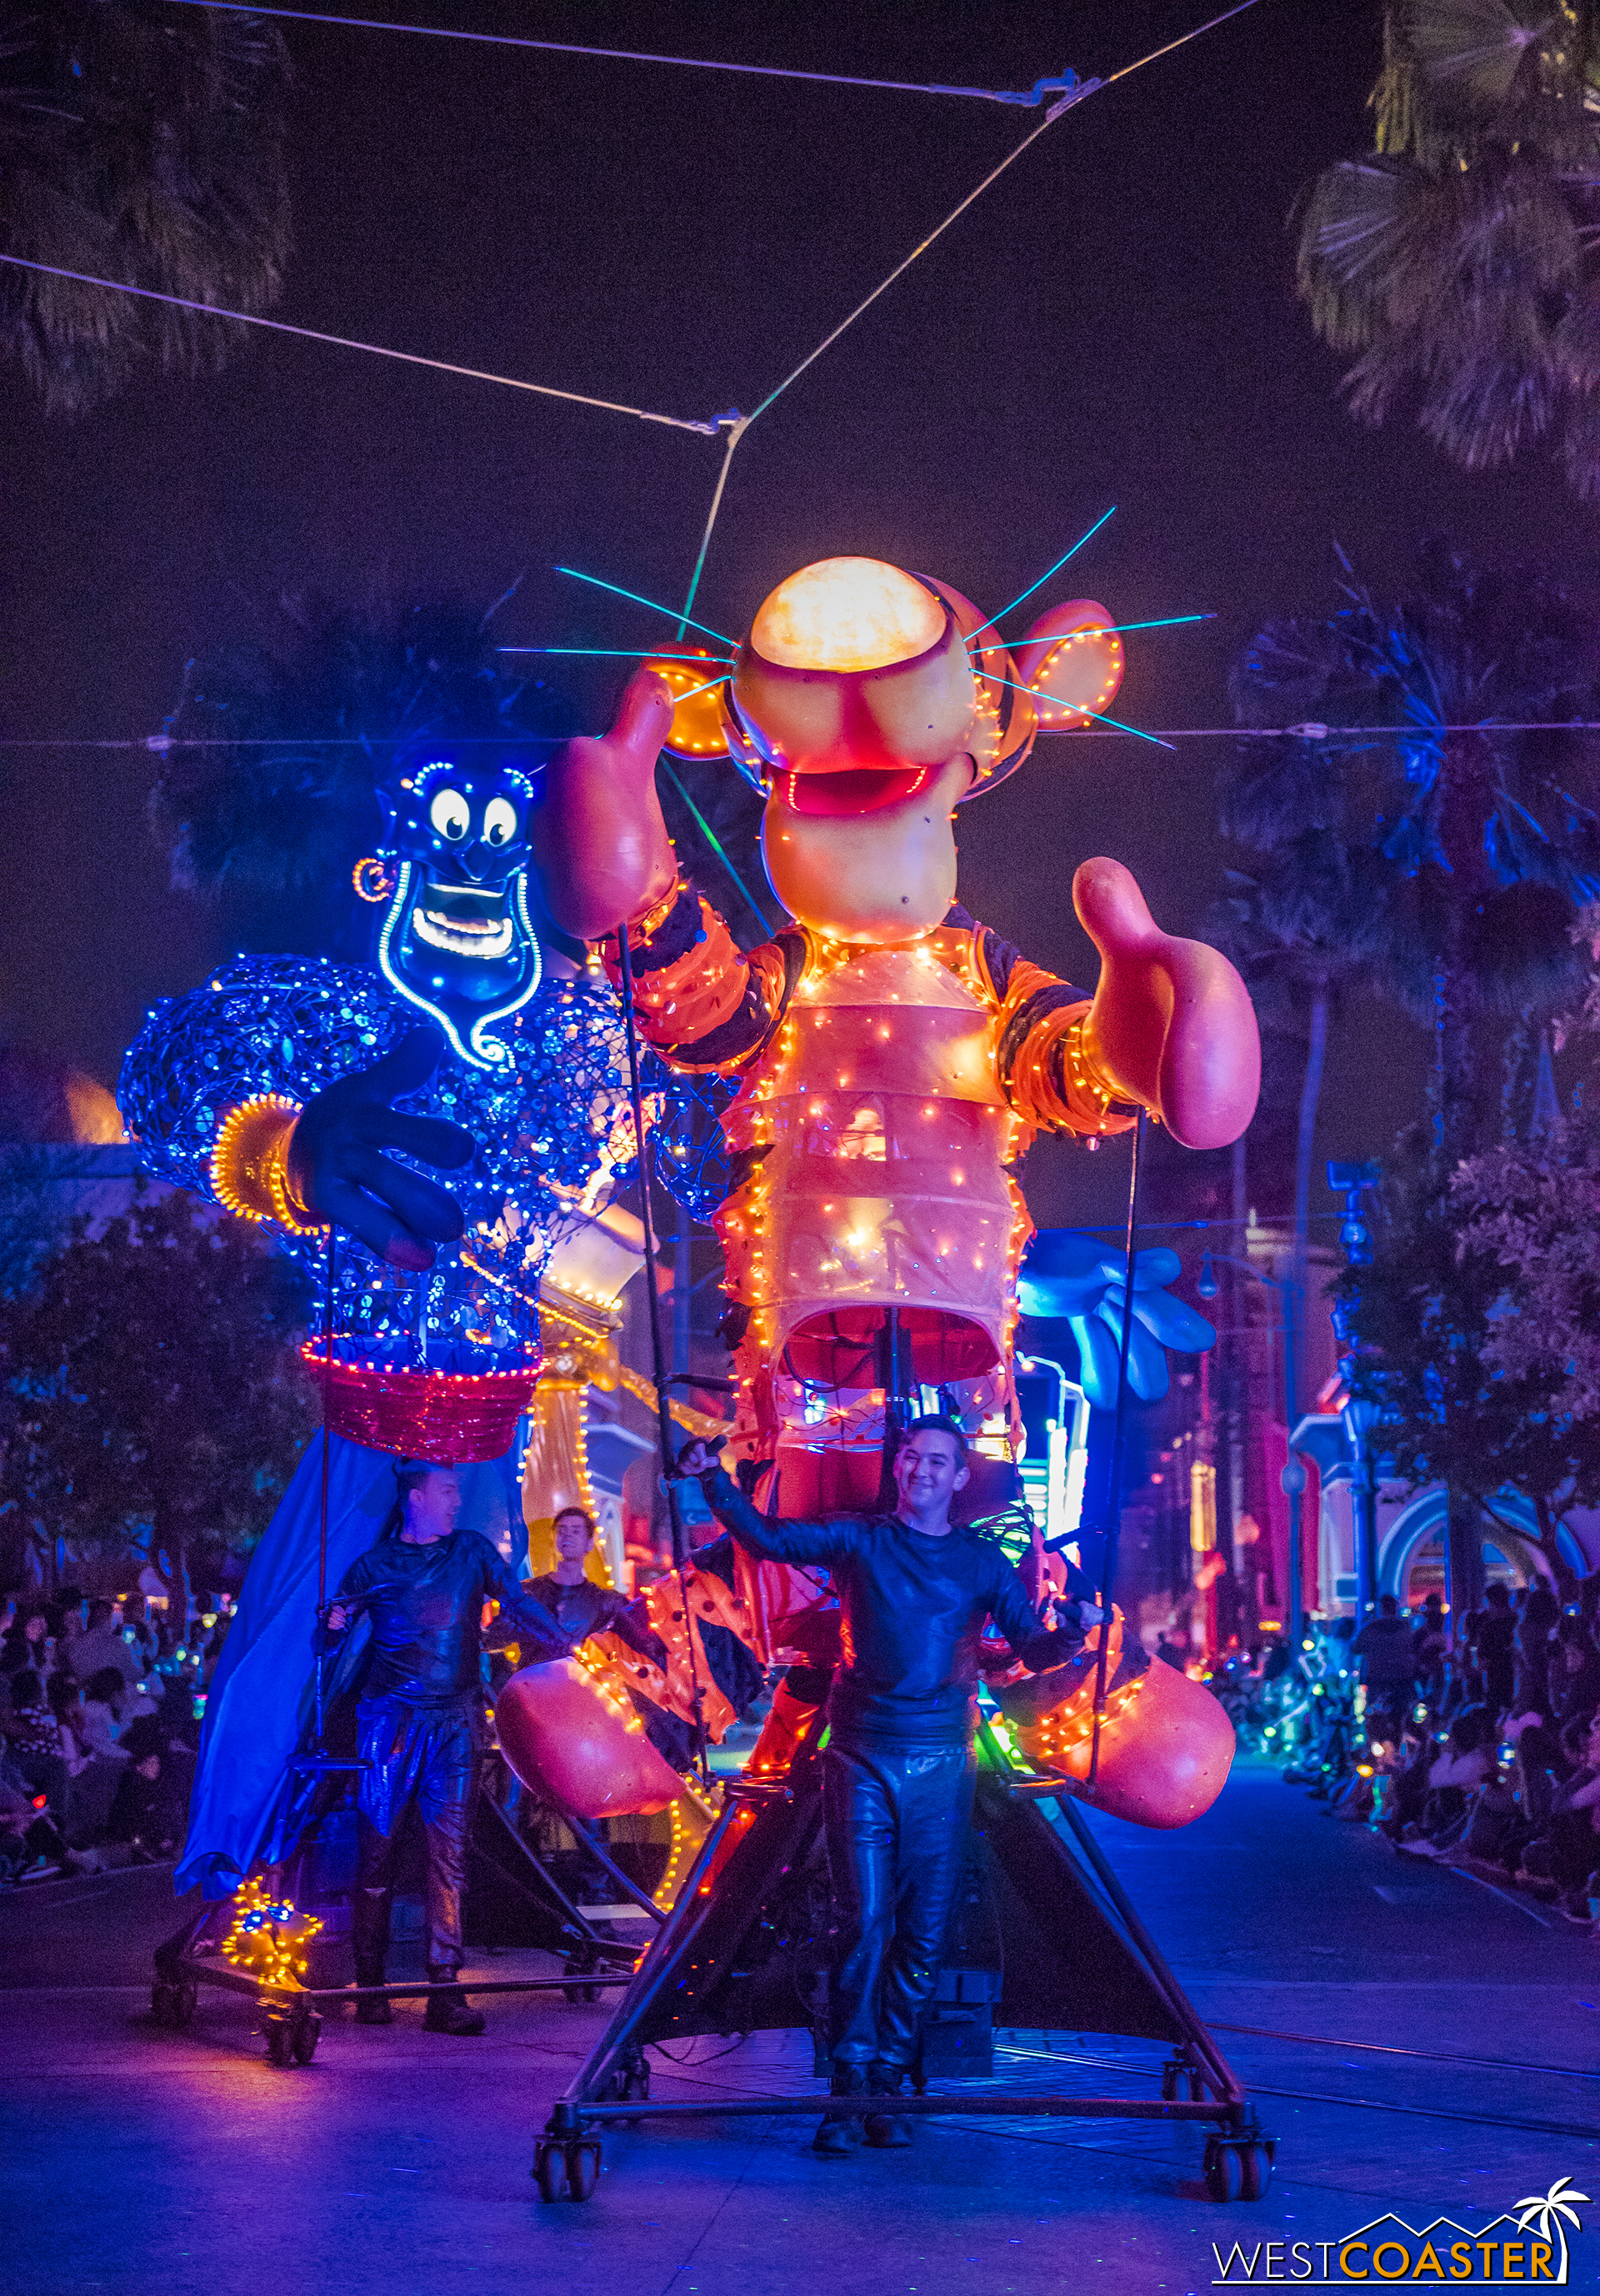 And the old World of Color preshow giant puppets are back in their original home park again!